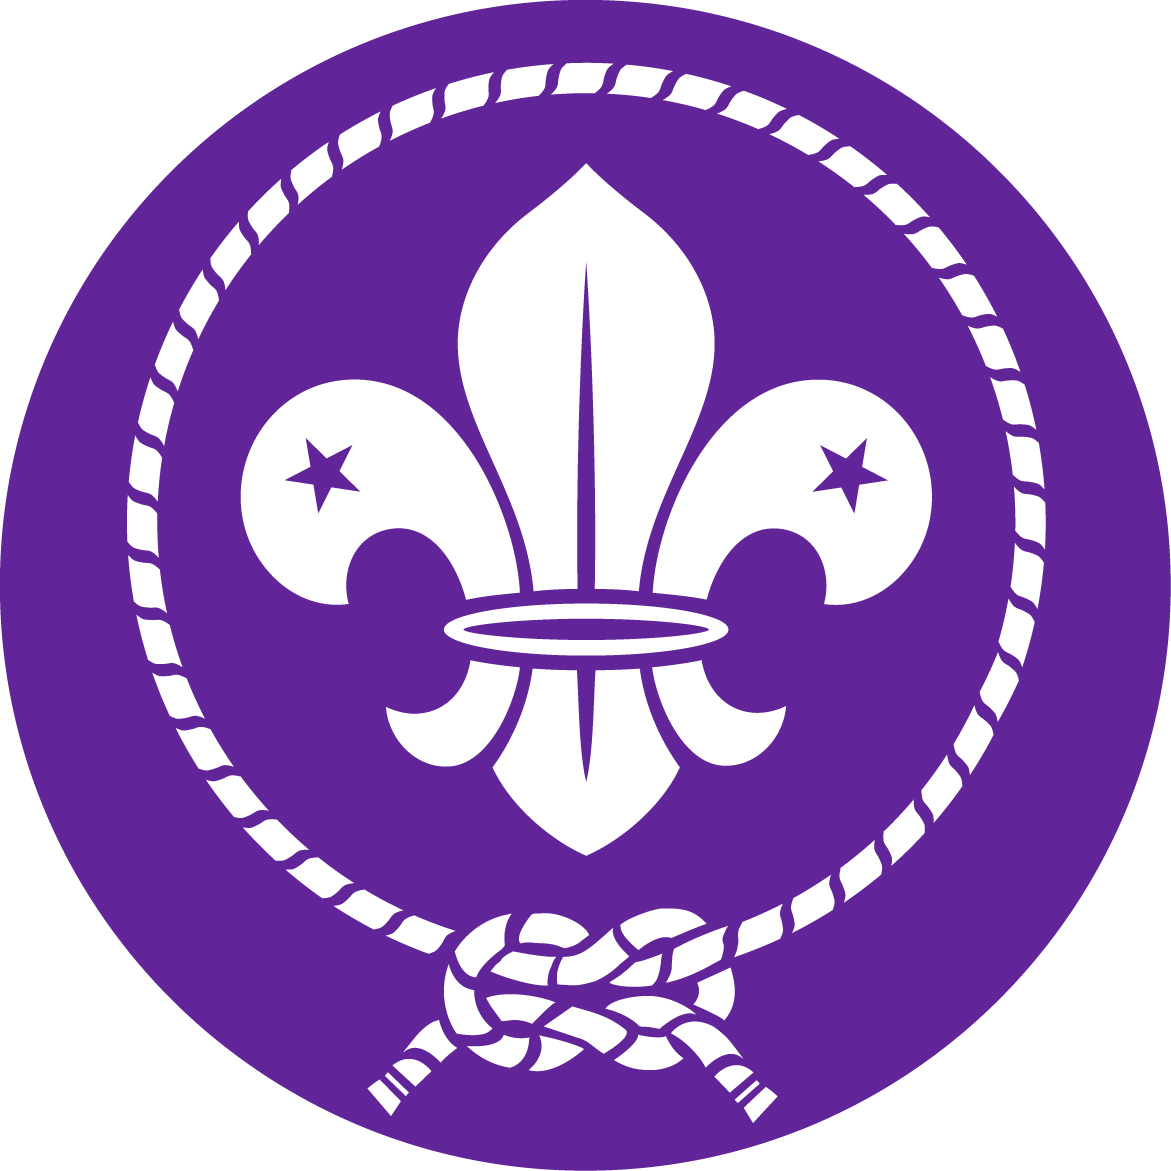 Profile picture for user Africa Scout Region